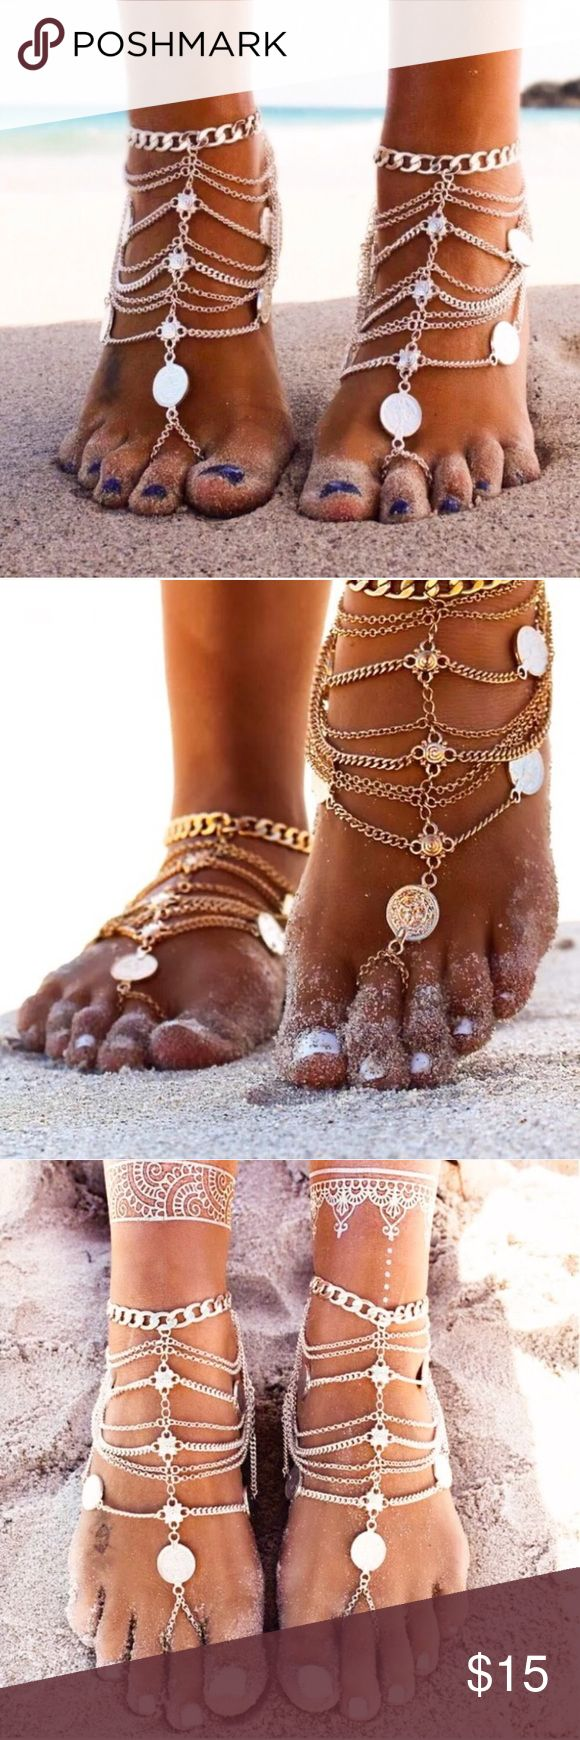 "Single Bohemian Foot Chain Wear this to the beach🏖, your favorite festival 🎡, or just because it's so damn cute! 🌸 Brand new with tags!  Silver in color. Chain is 6.3"" in length and can be adjusted between 9""-11.8"" around the ankle. This post is for a single chain only! Only one left in stock! Tags: body jewelry Jewelry"